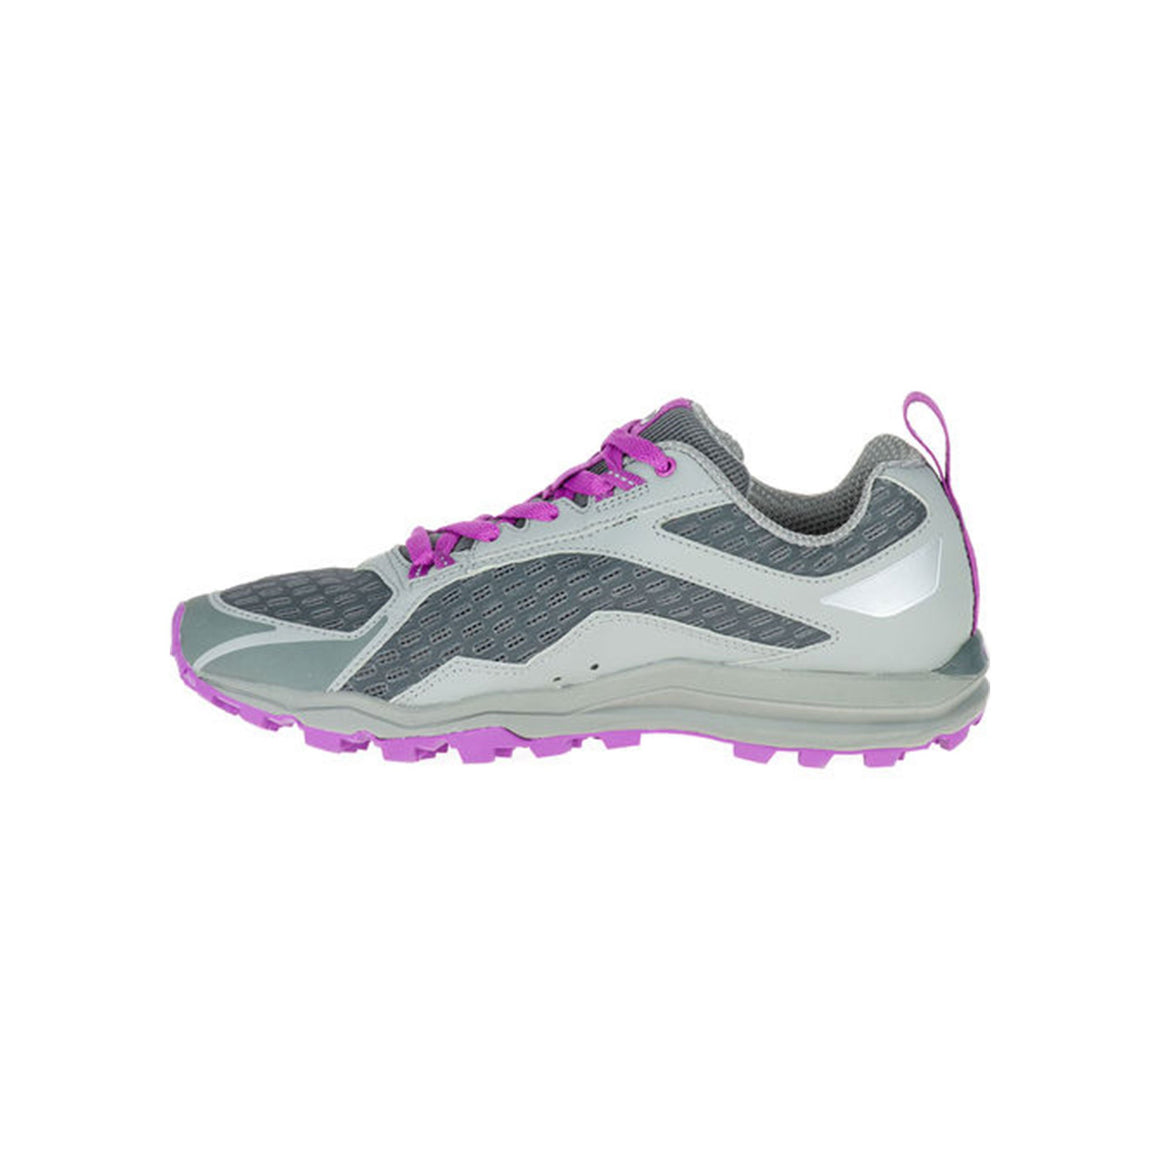 Merrell All Out Crush - Women's